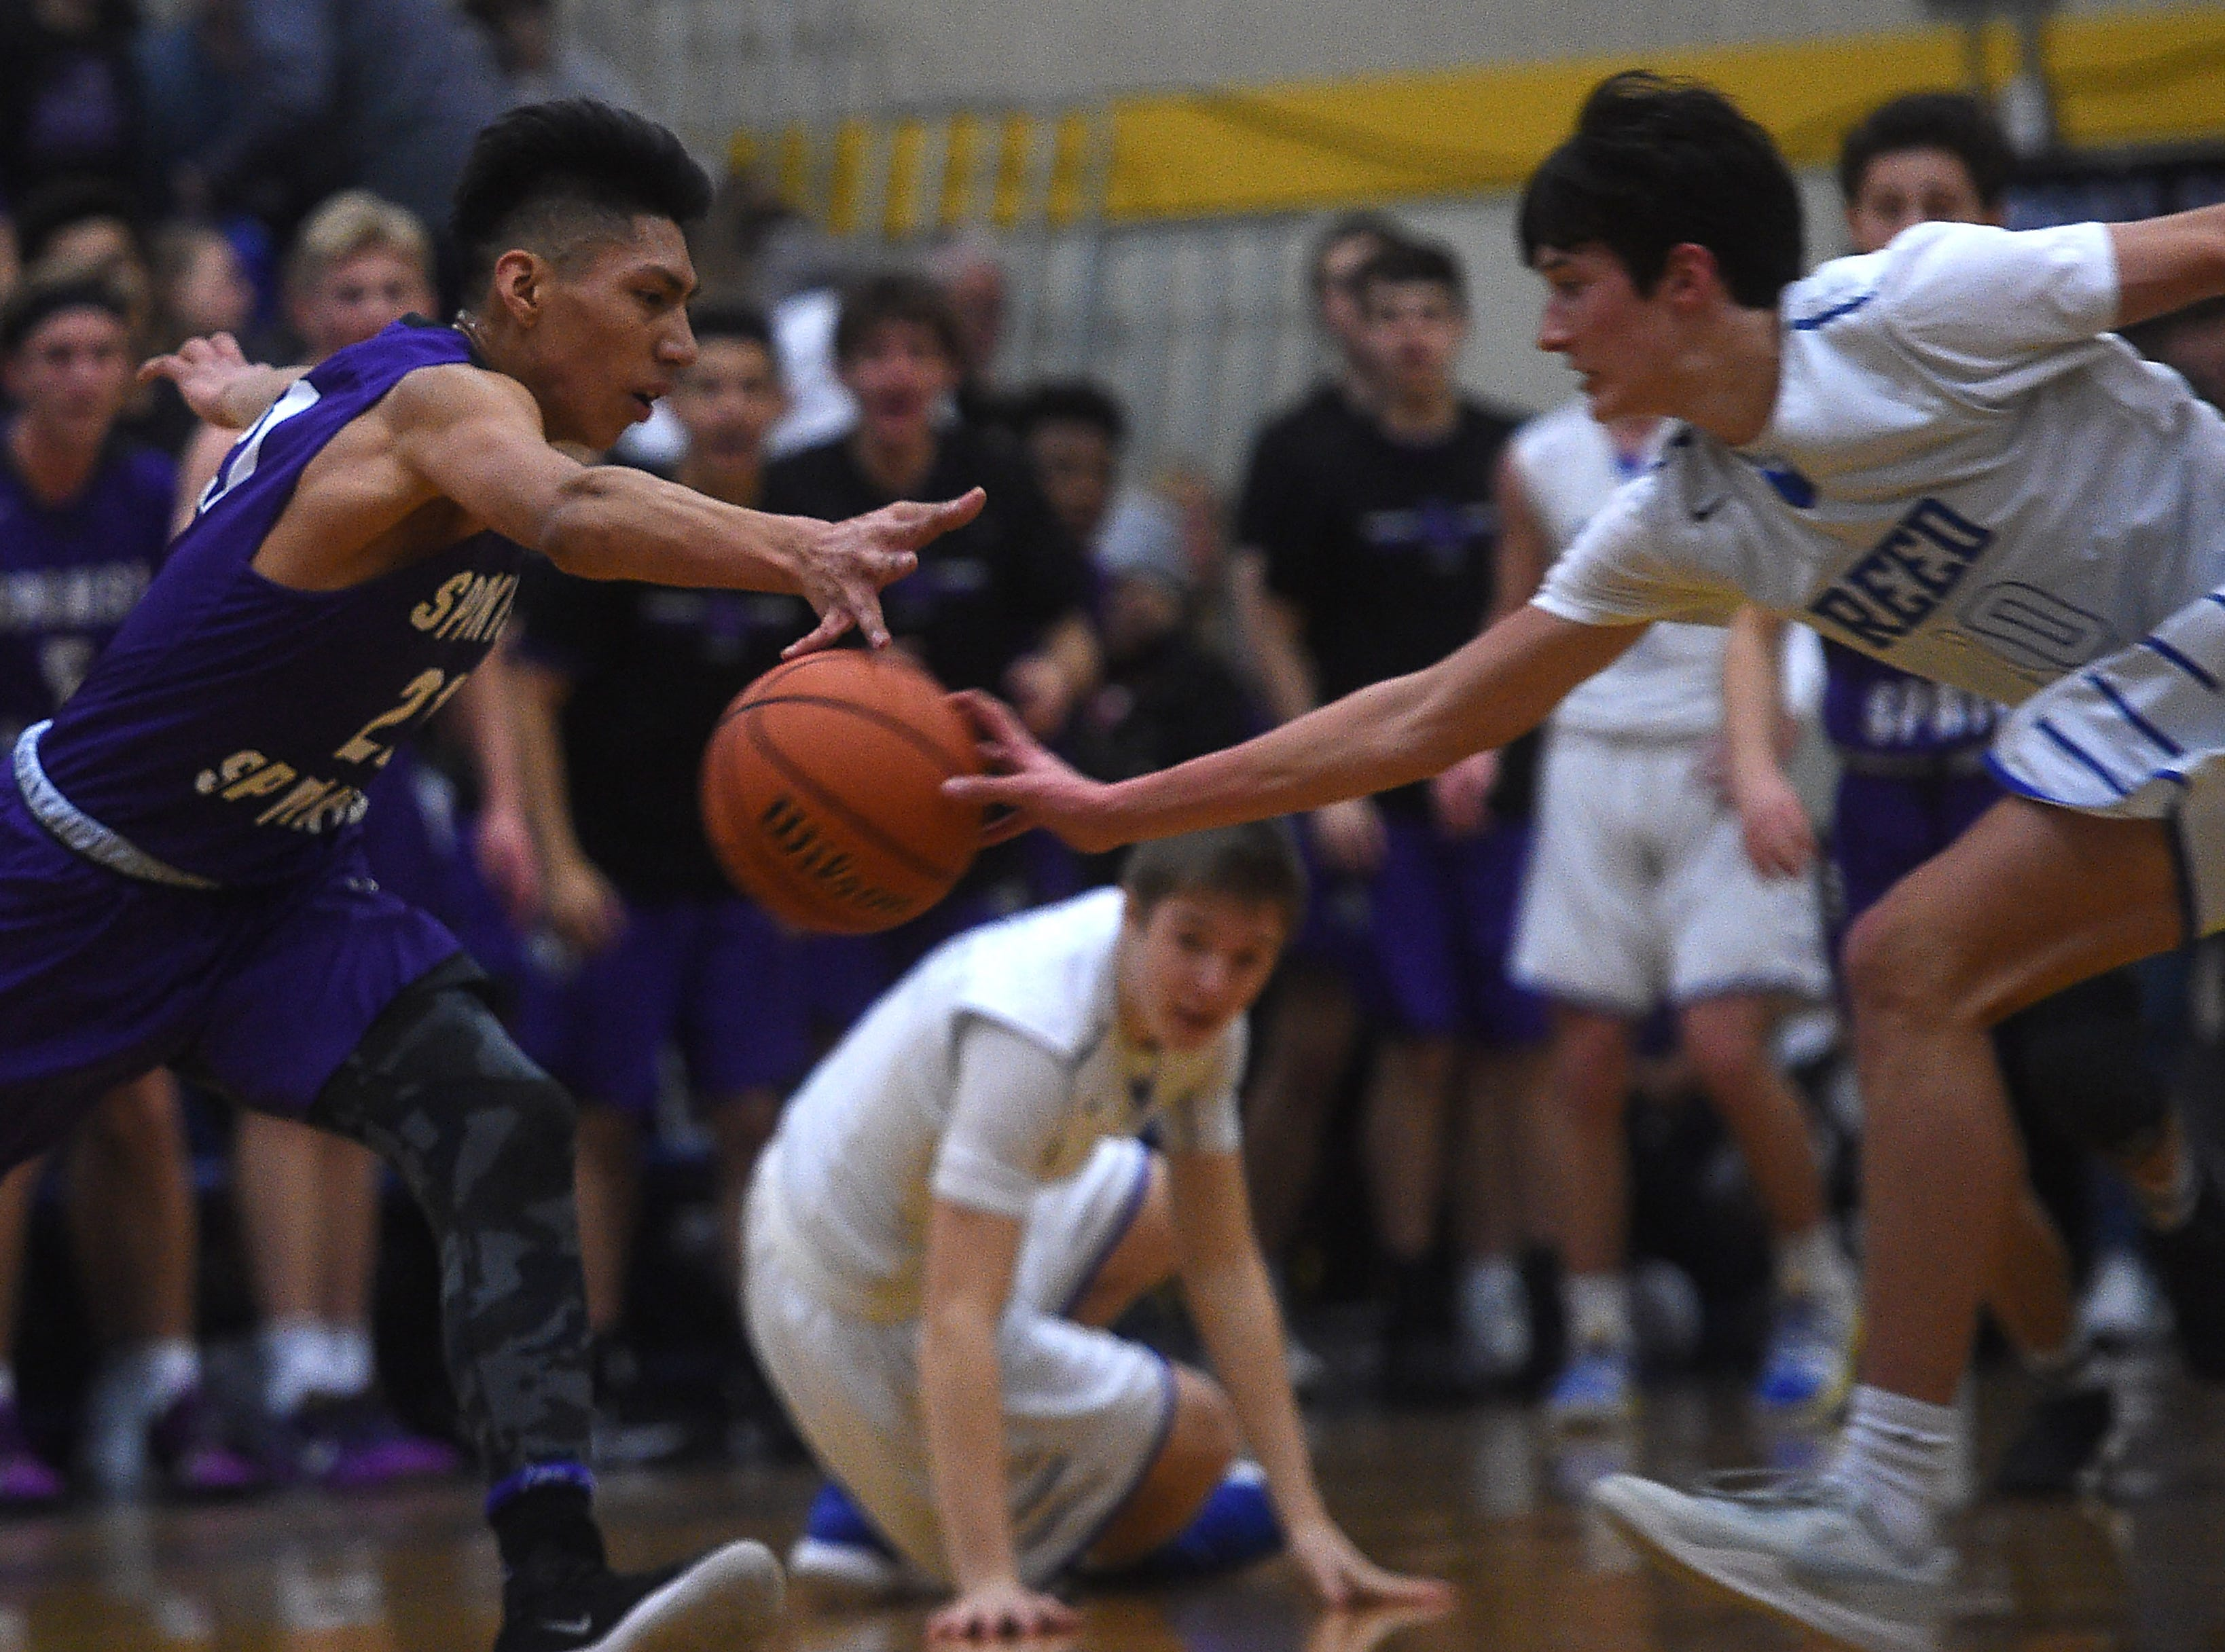 Reed's Trey Stevens (10) and Spanish Springs' Leo Grass reach for a loose ball during their basketball game in Sparks on Feb. 16, 2019.